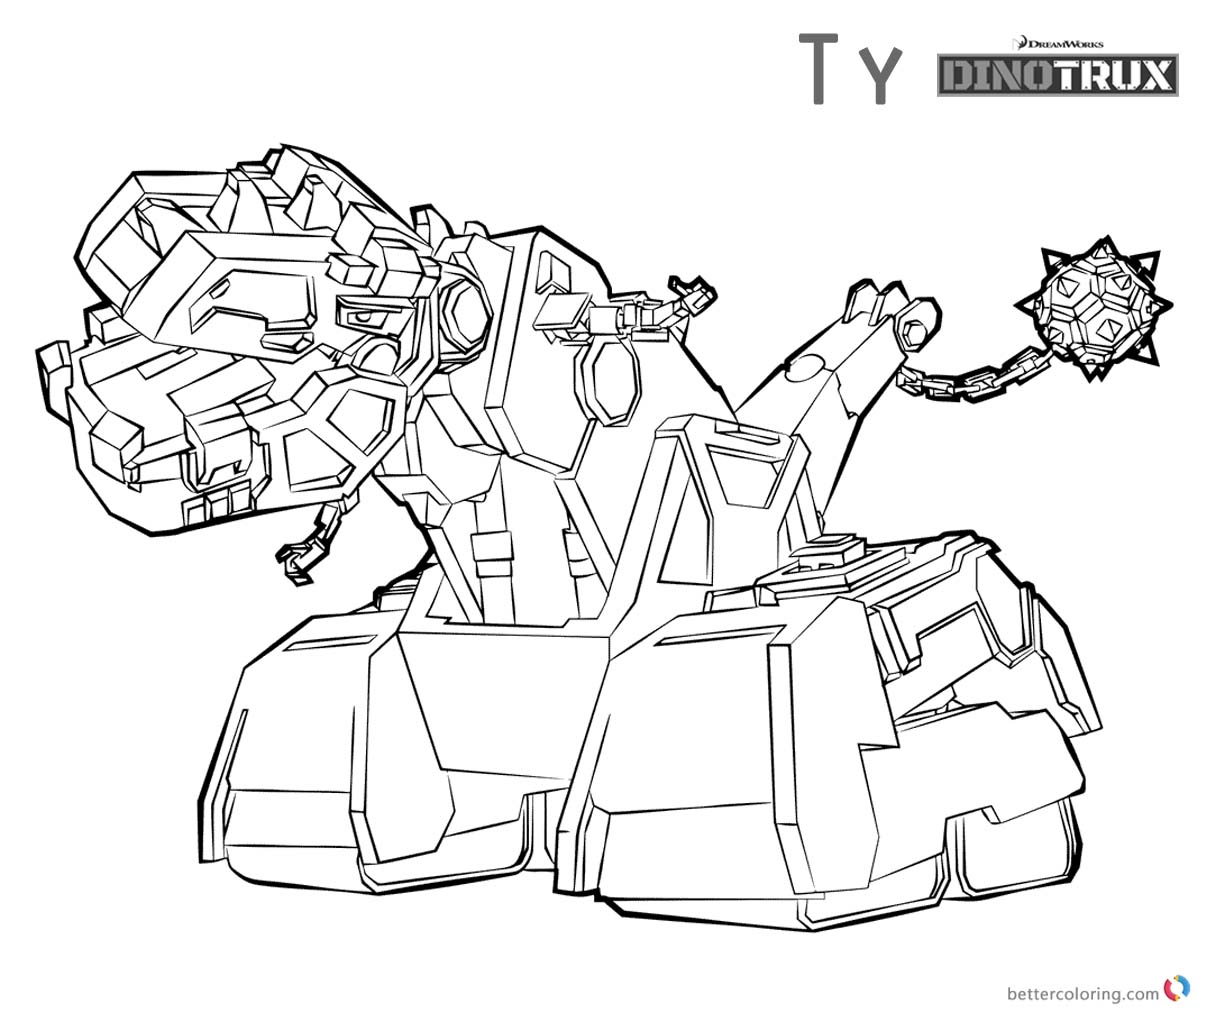 Dinotrux coloring pages Ty lineart printable